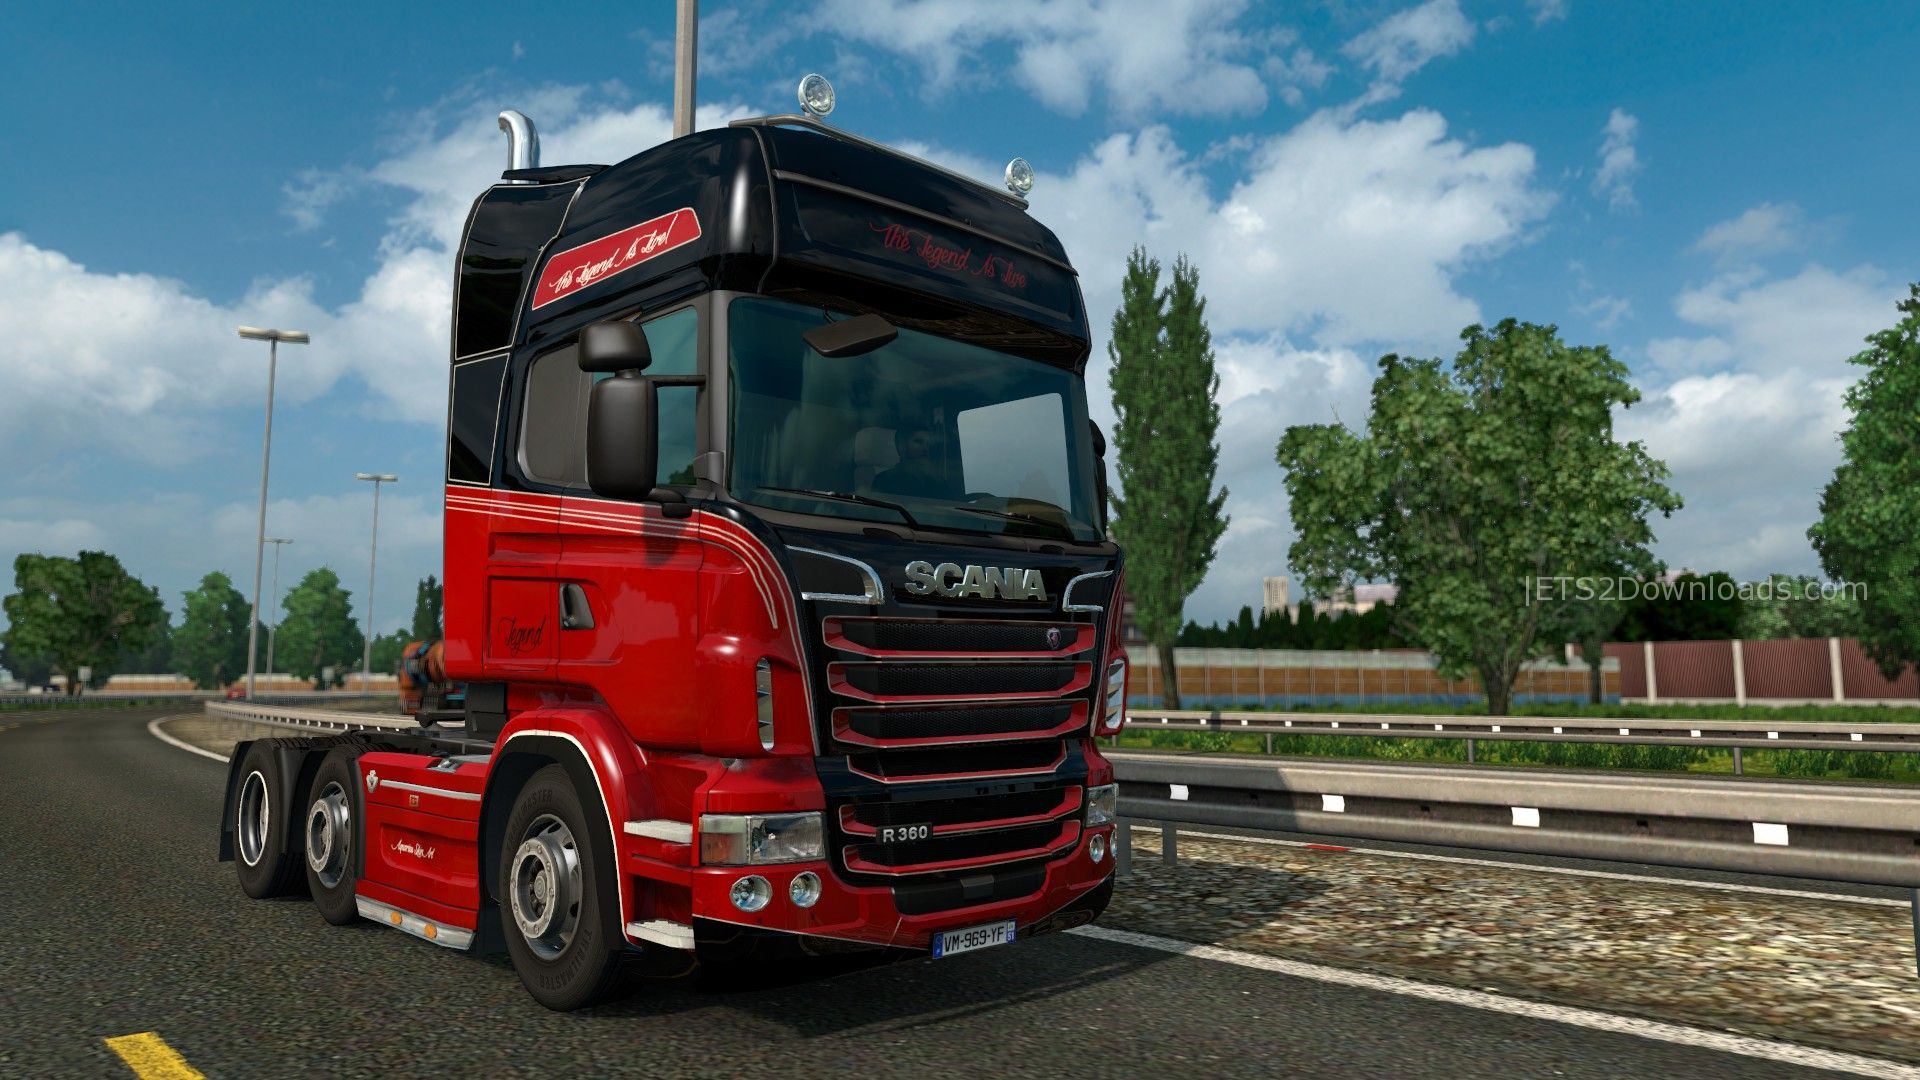 ets2downloads com on reddit com